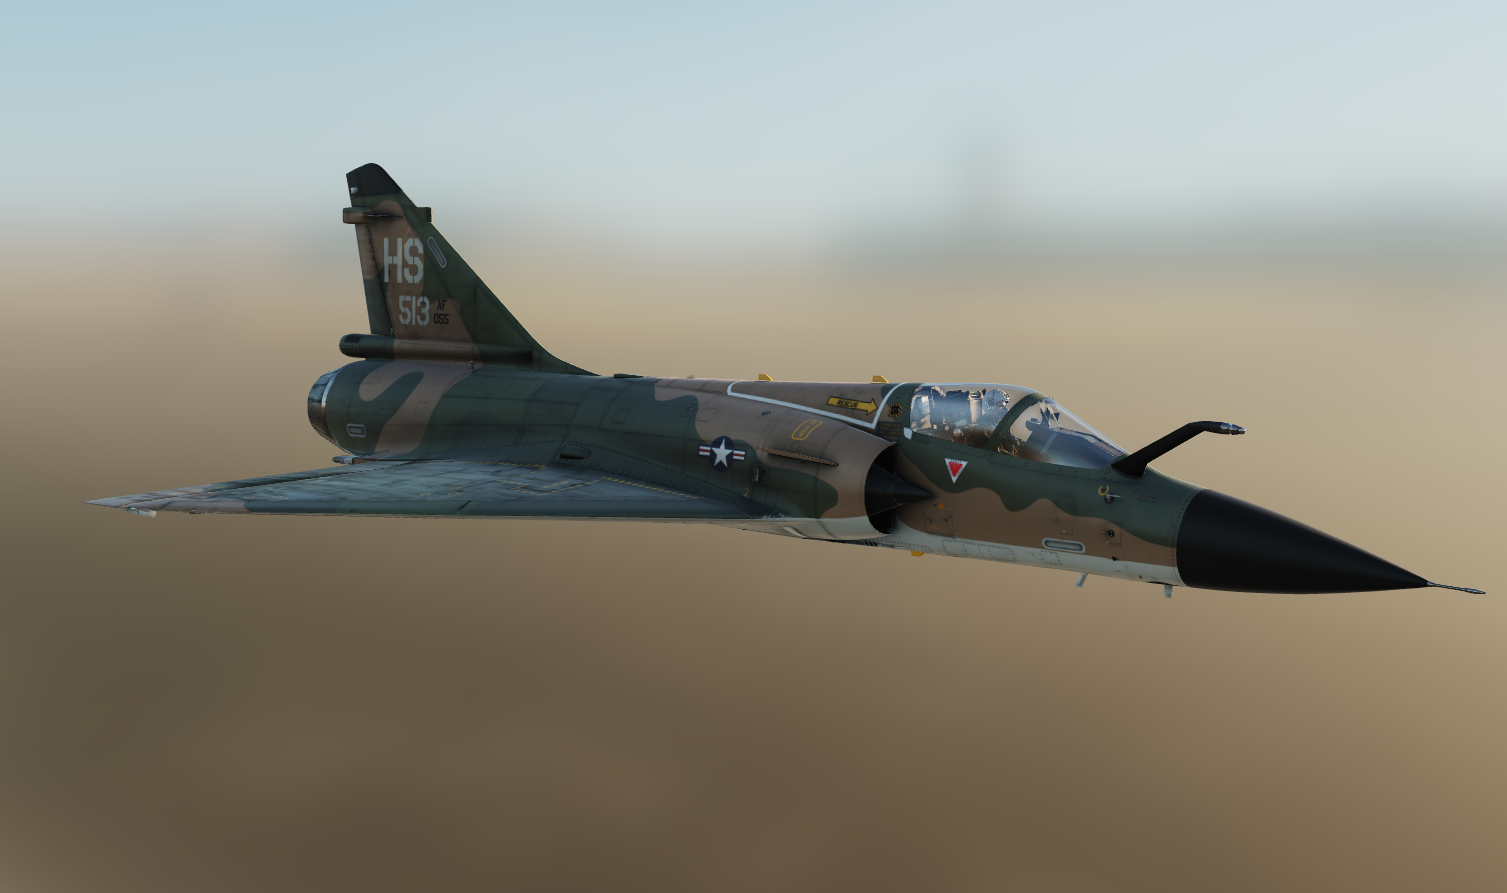 South East Asia no.513 Mirage 2000c